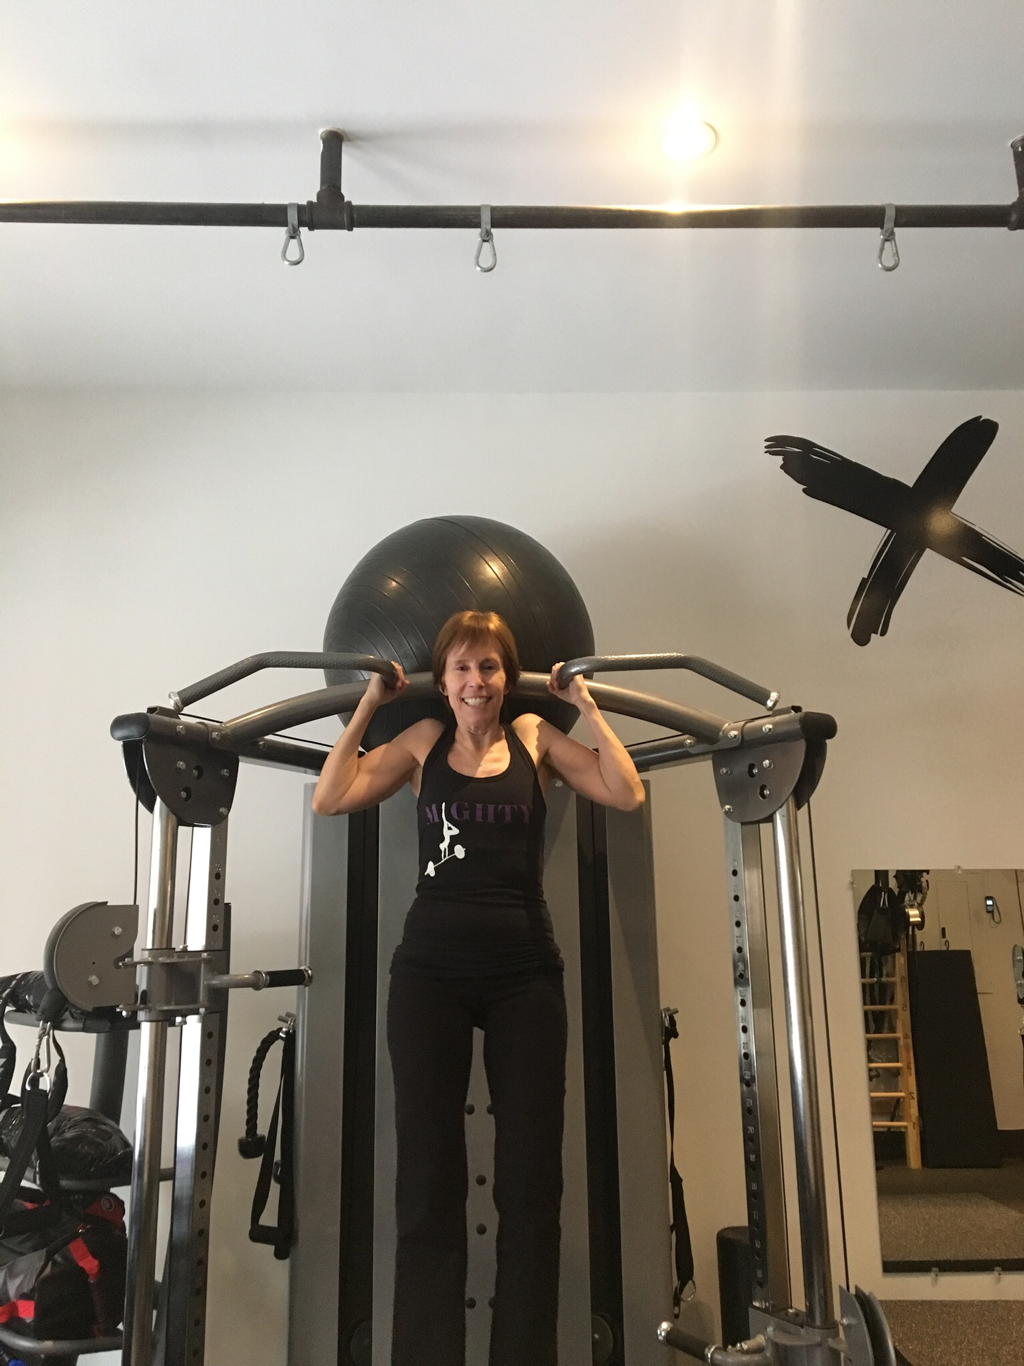 Roberta showing off her first pullup at age 62!